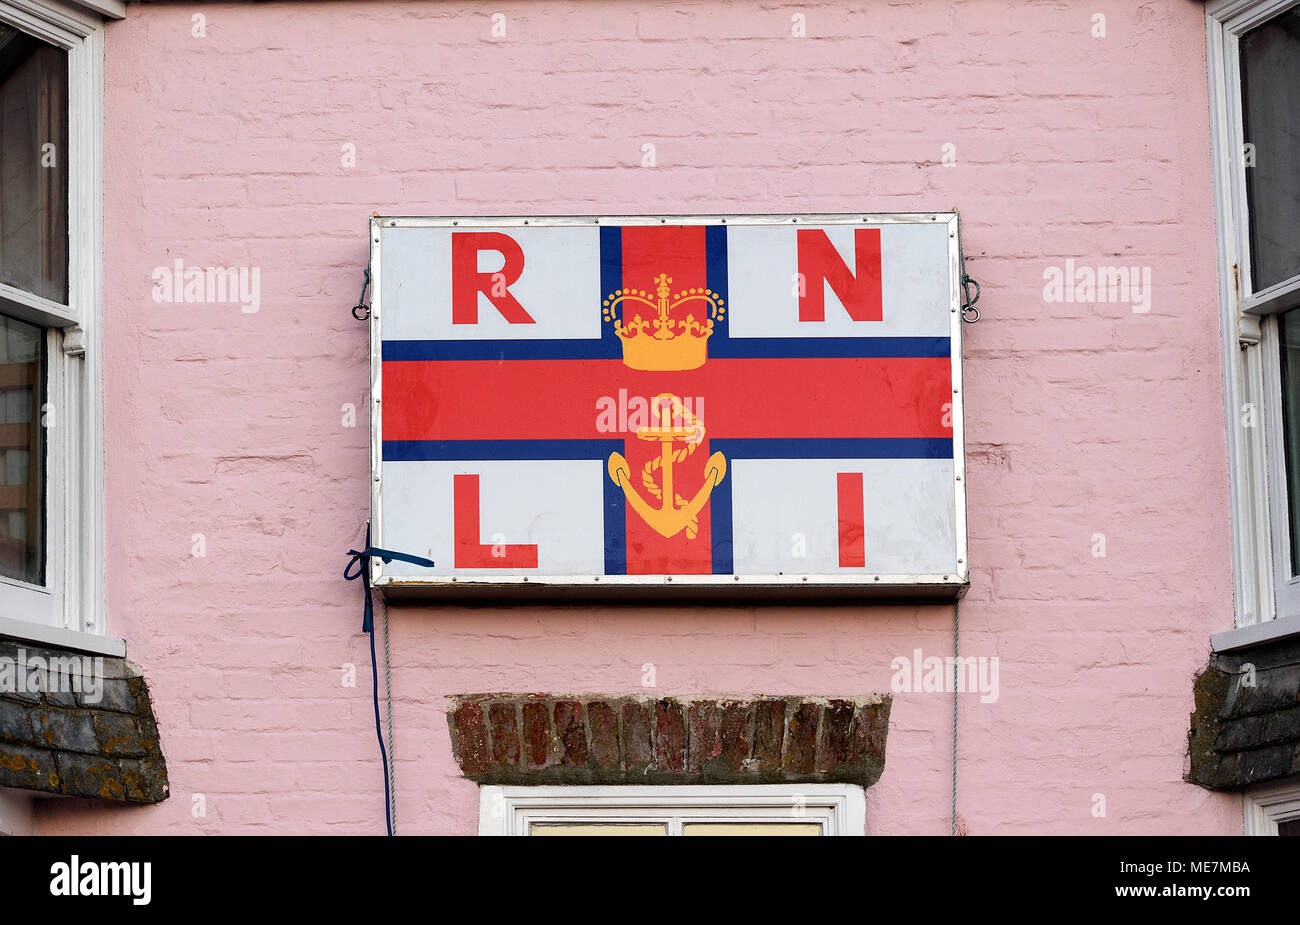 royal national lifeboat institution, rnli, sign, poster, logo on a cottage in mousehole, cornwall, uk. - Stock Image